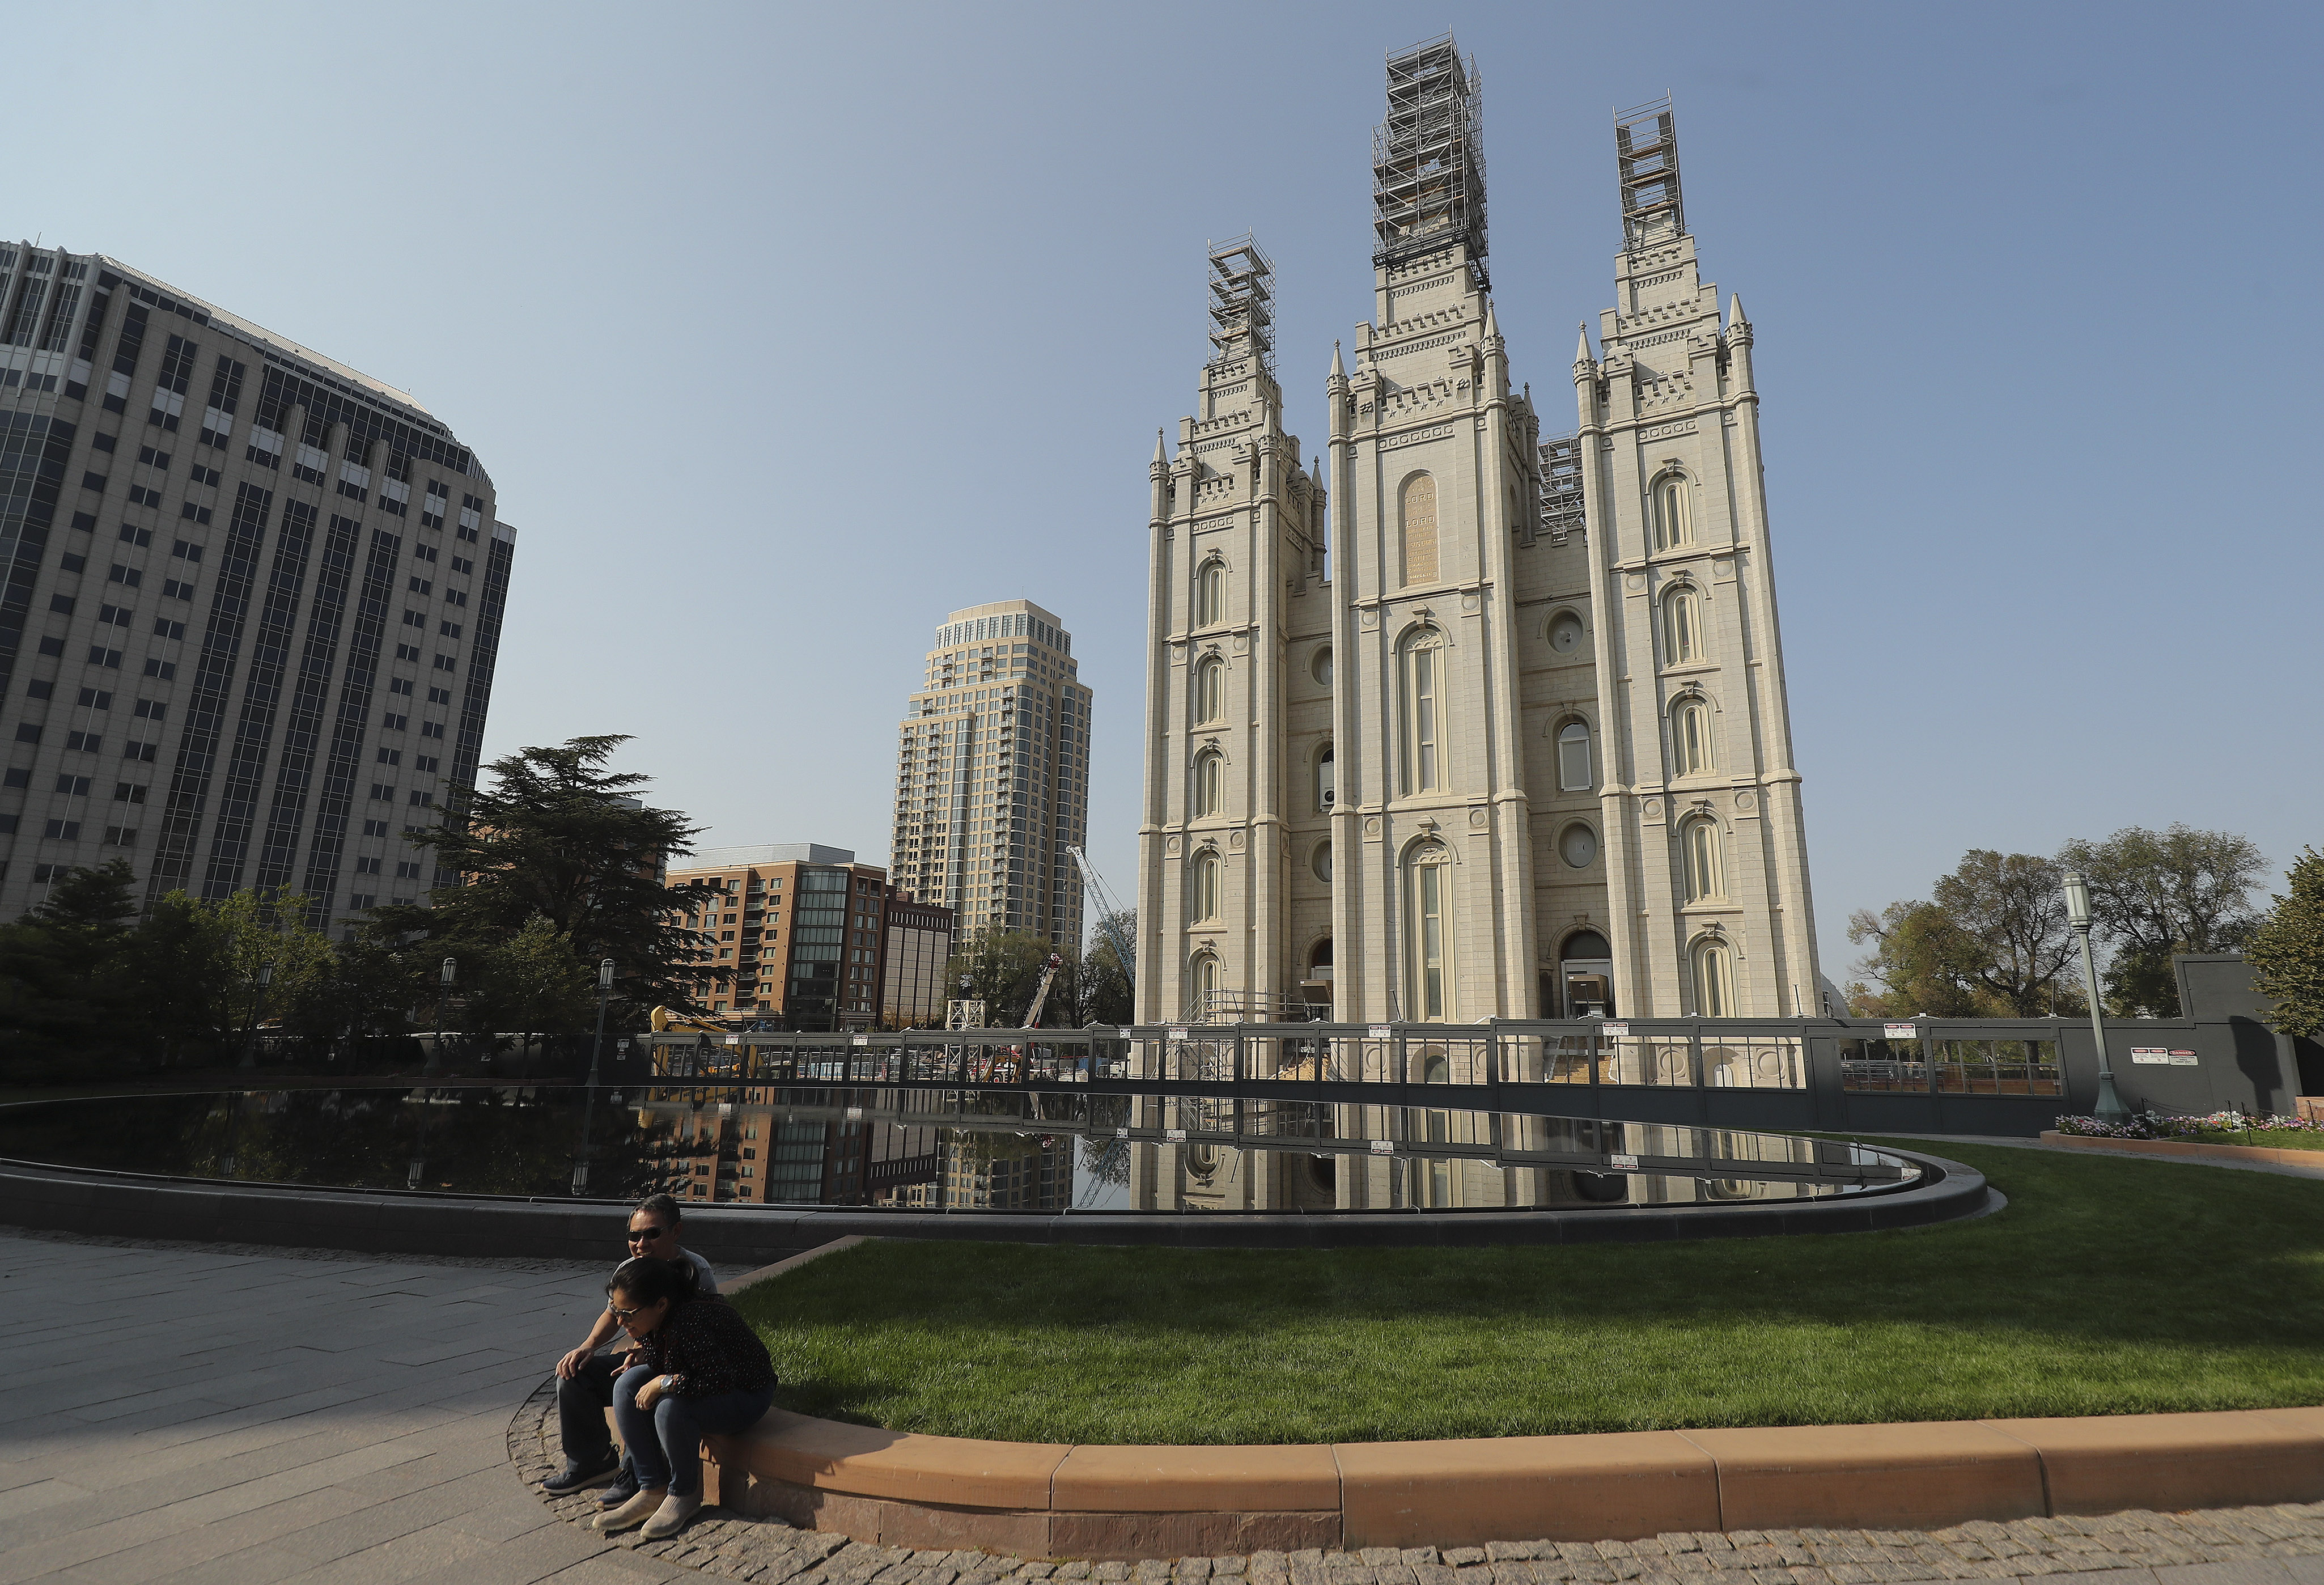 Visitors sit near the Salt Lake Temple during the 190th Semiannual General Conference of The Church of Jesus Christ of Latter-day Saints in Salt Lake City on Saturday, Oct. 3, 2020.